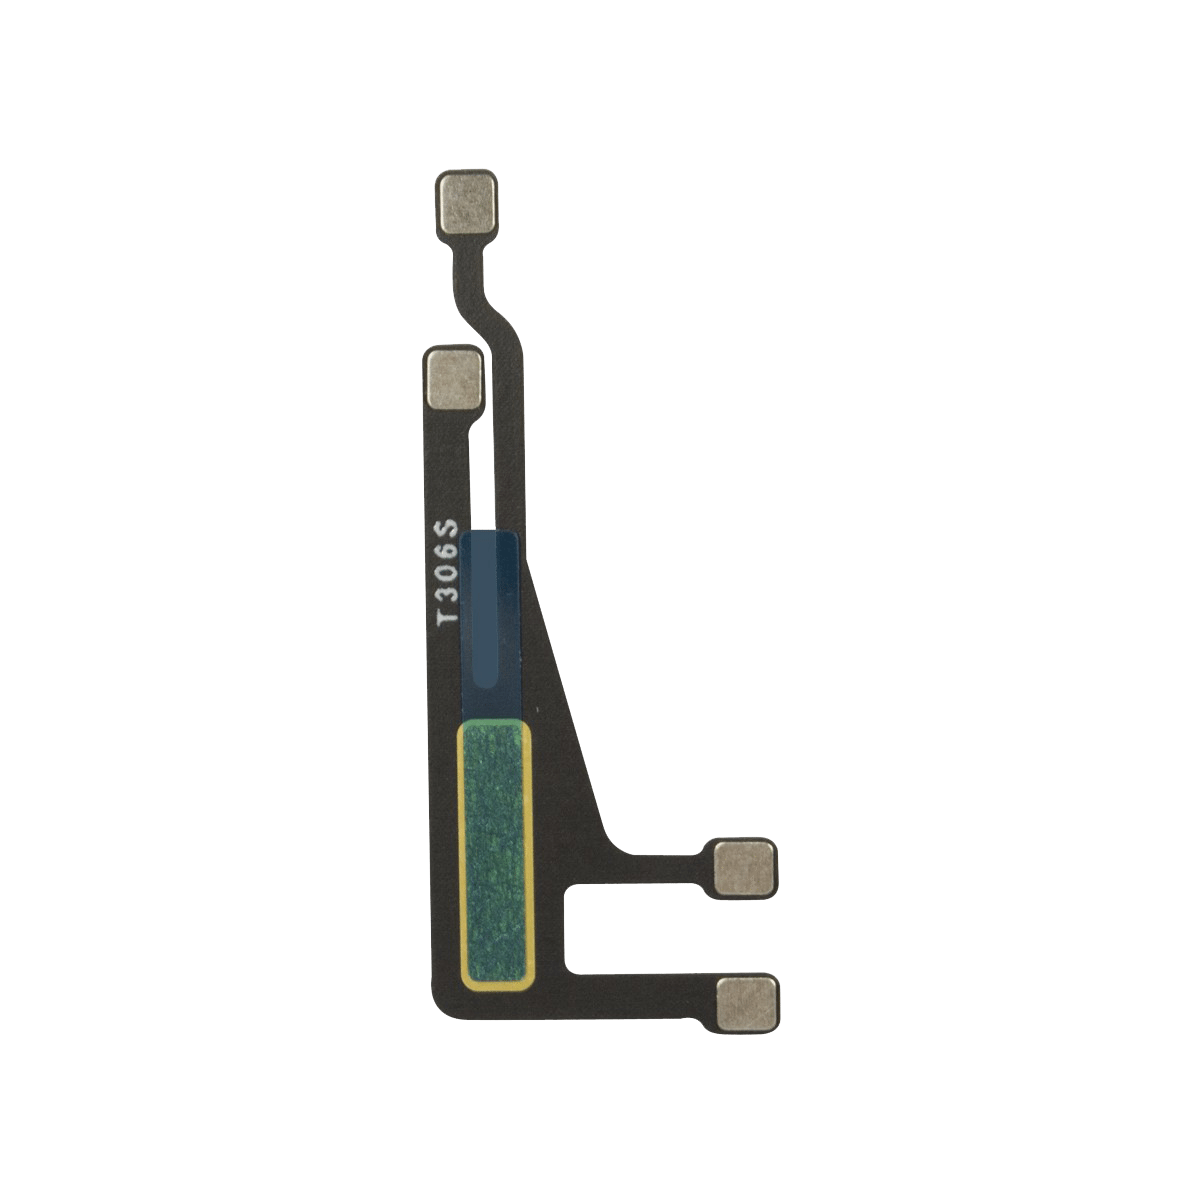 iPhone 6 Motherboard Connector Cable Replacement